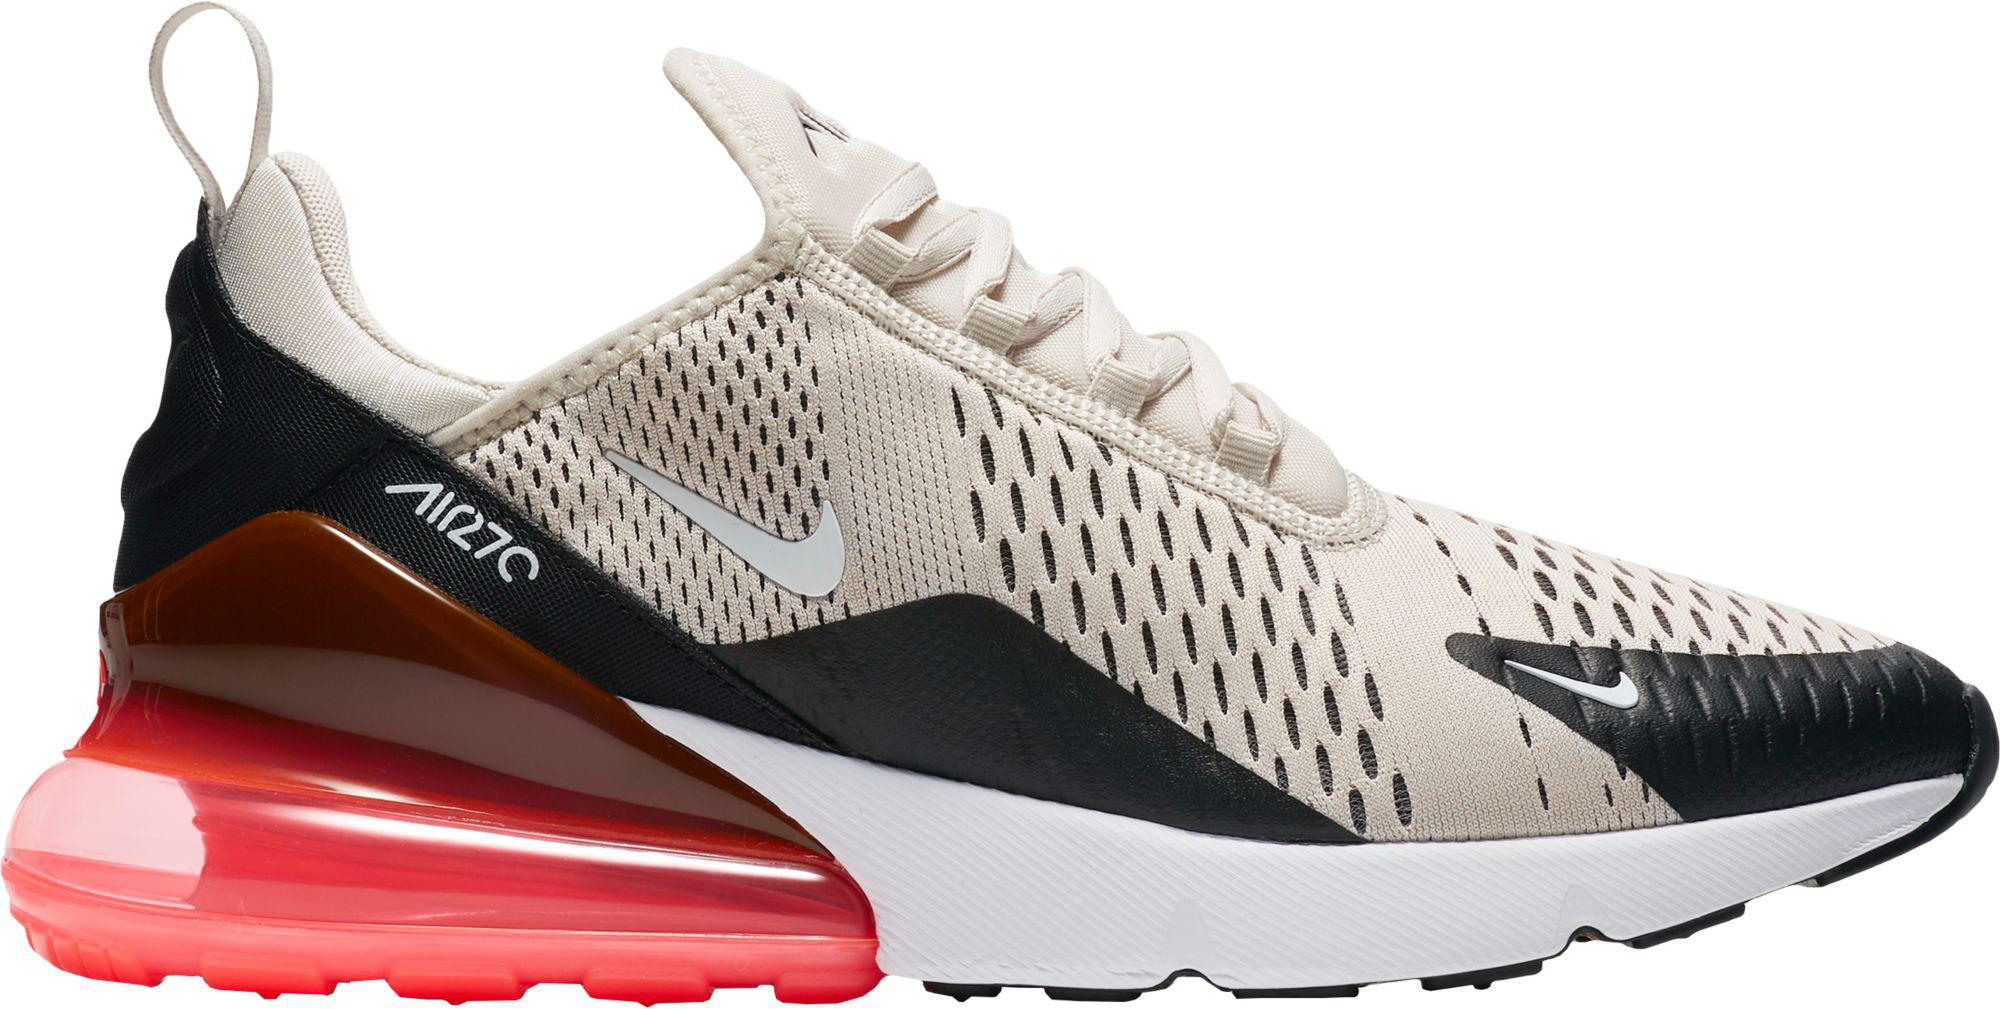 3097d5b88a Nike - Multicolor Air Max 270 Shoes for Men - Lyst